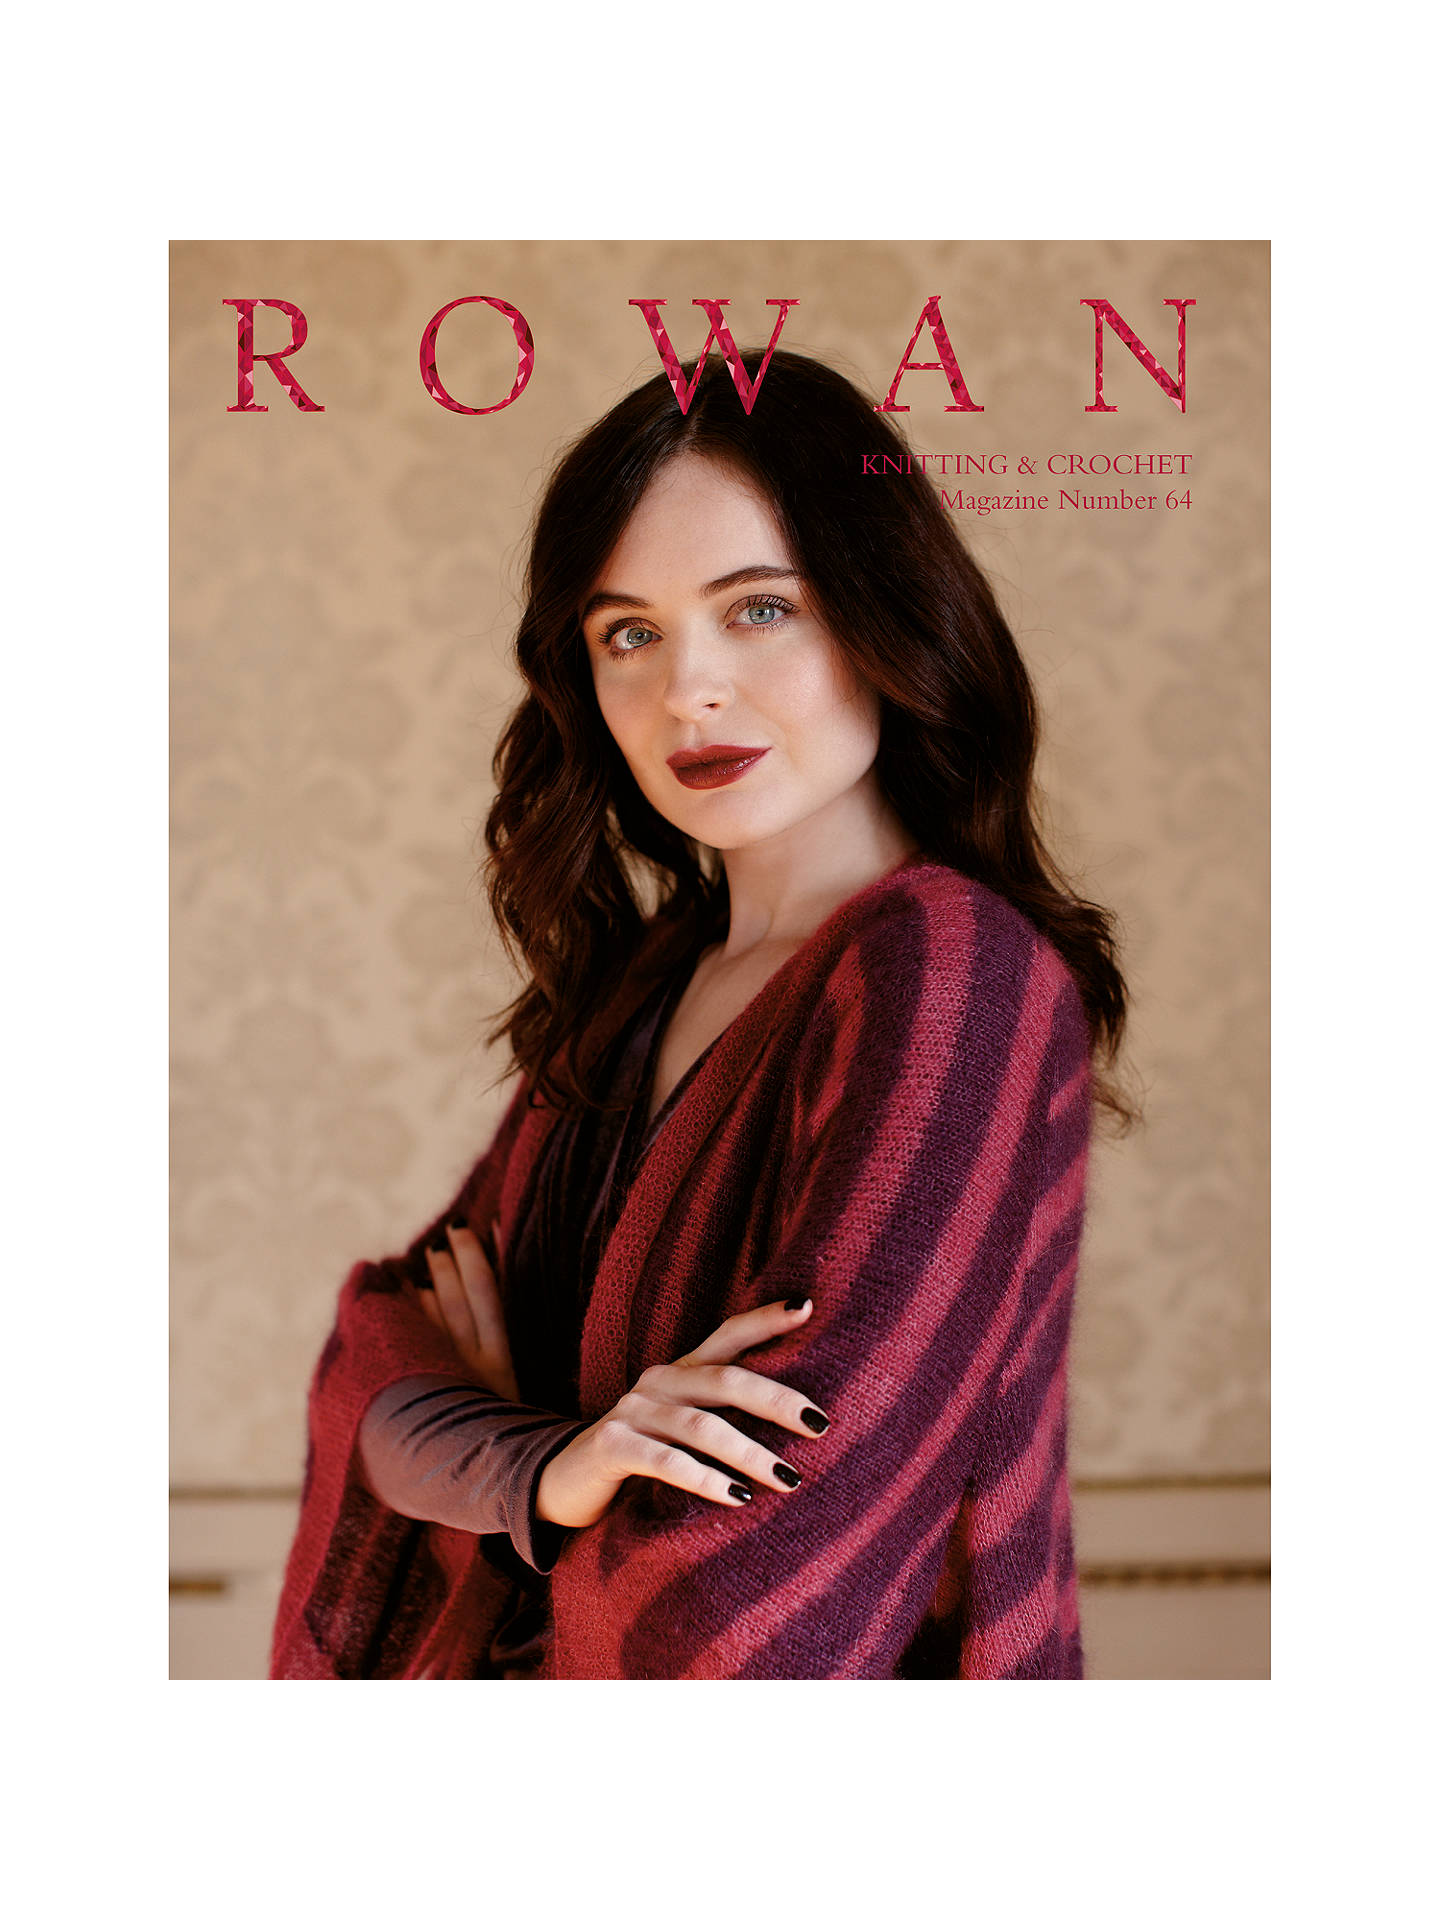 Rowan Magazine 64 Knitting and Crochet Patterns